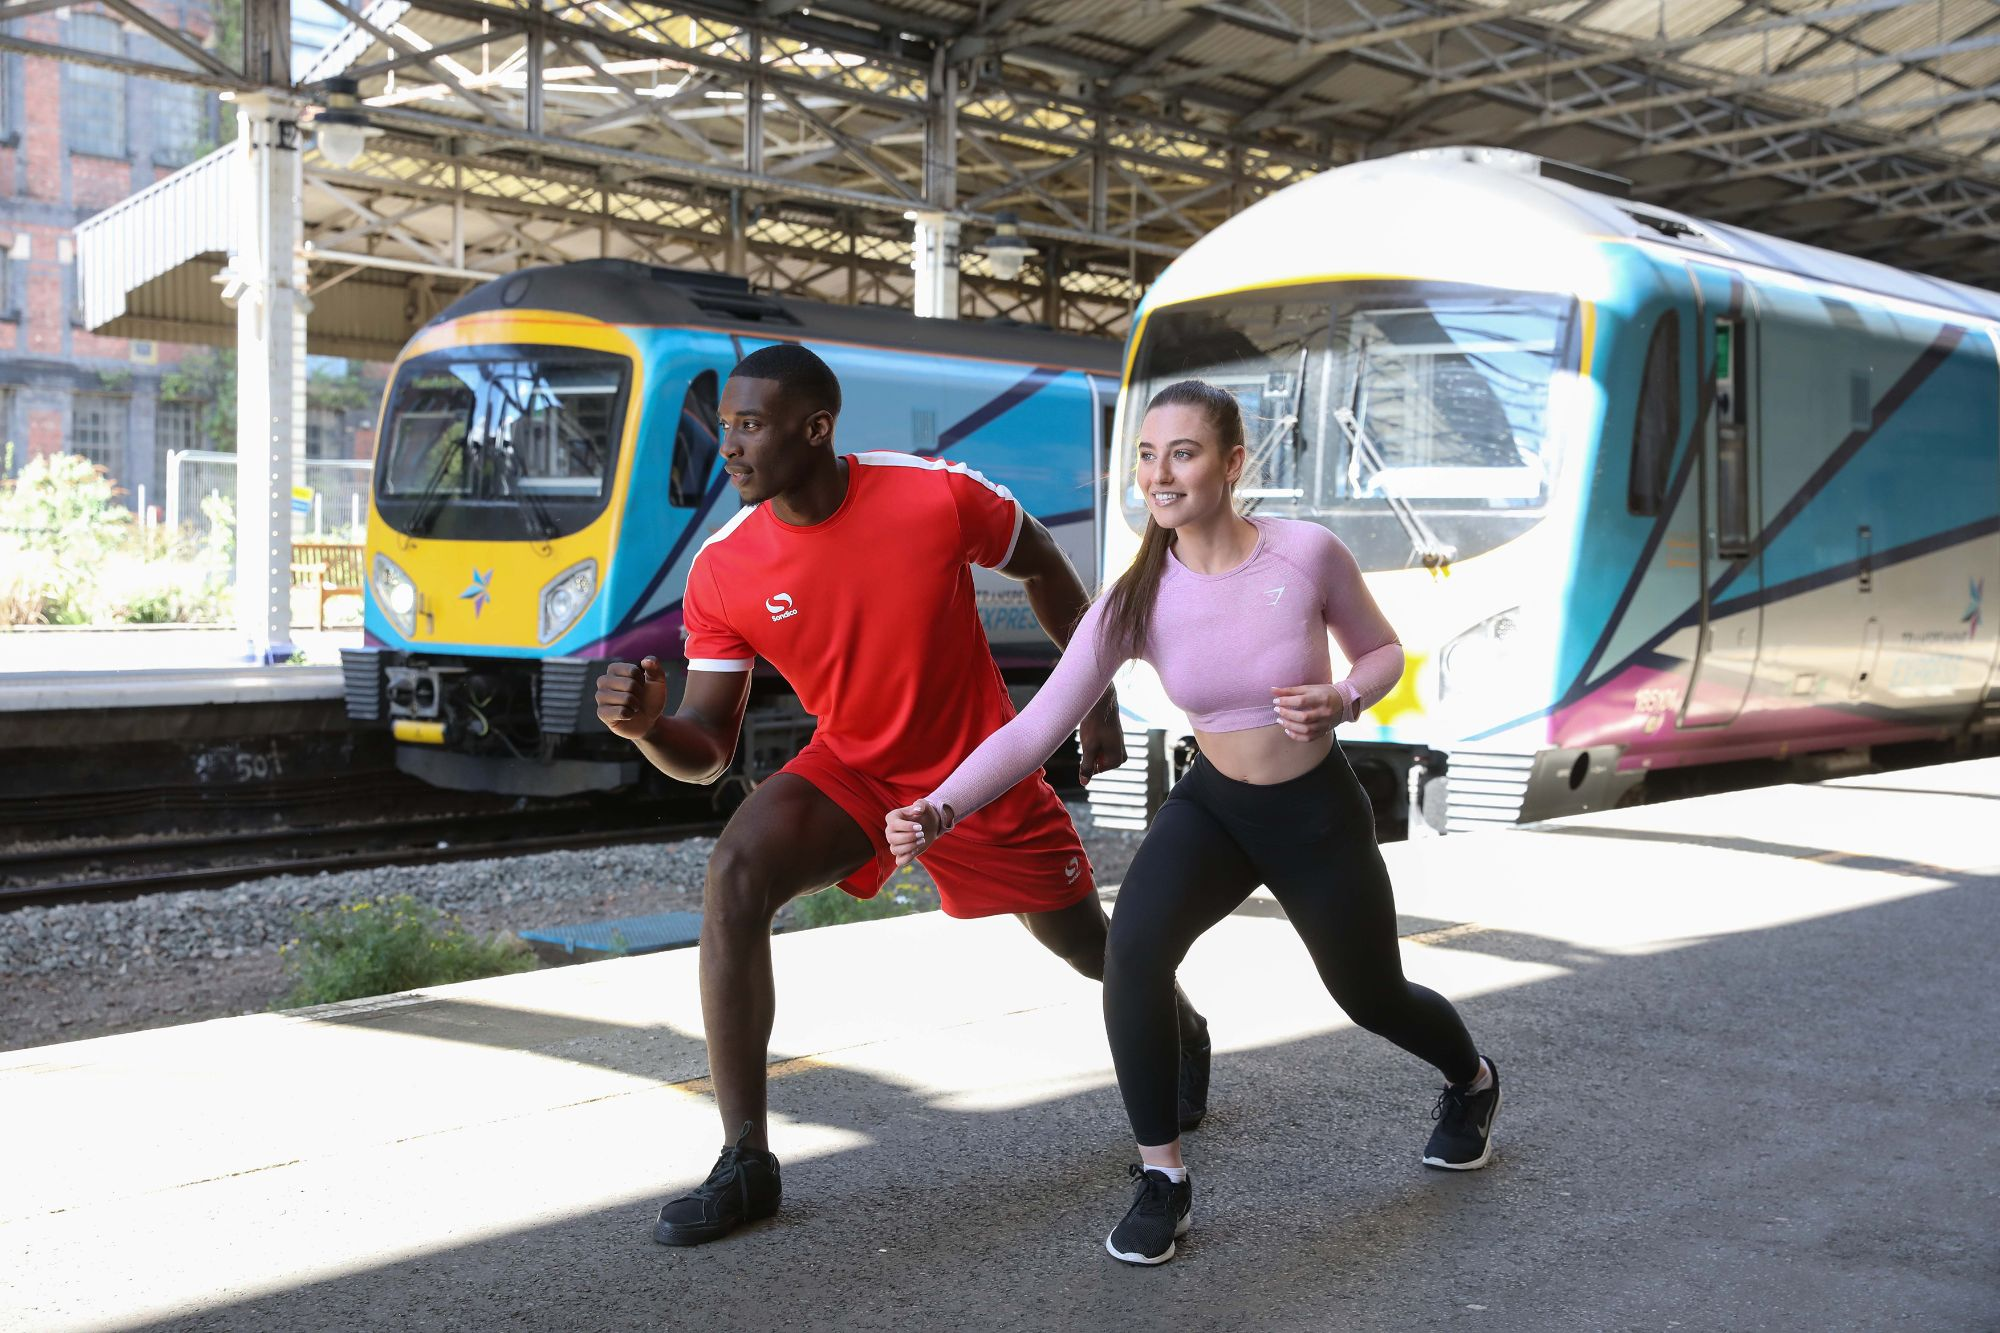 Image showing athletes in front of TransPennine Express trains